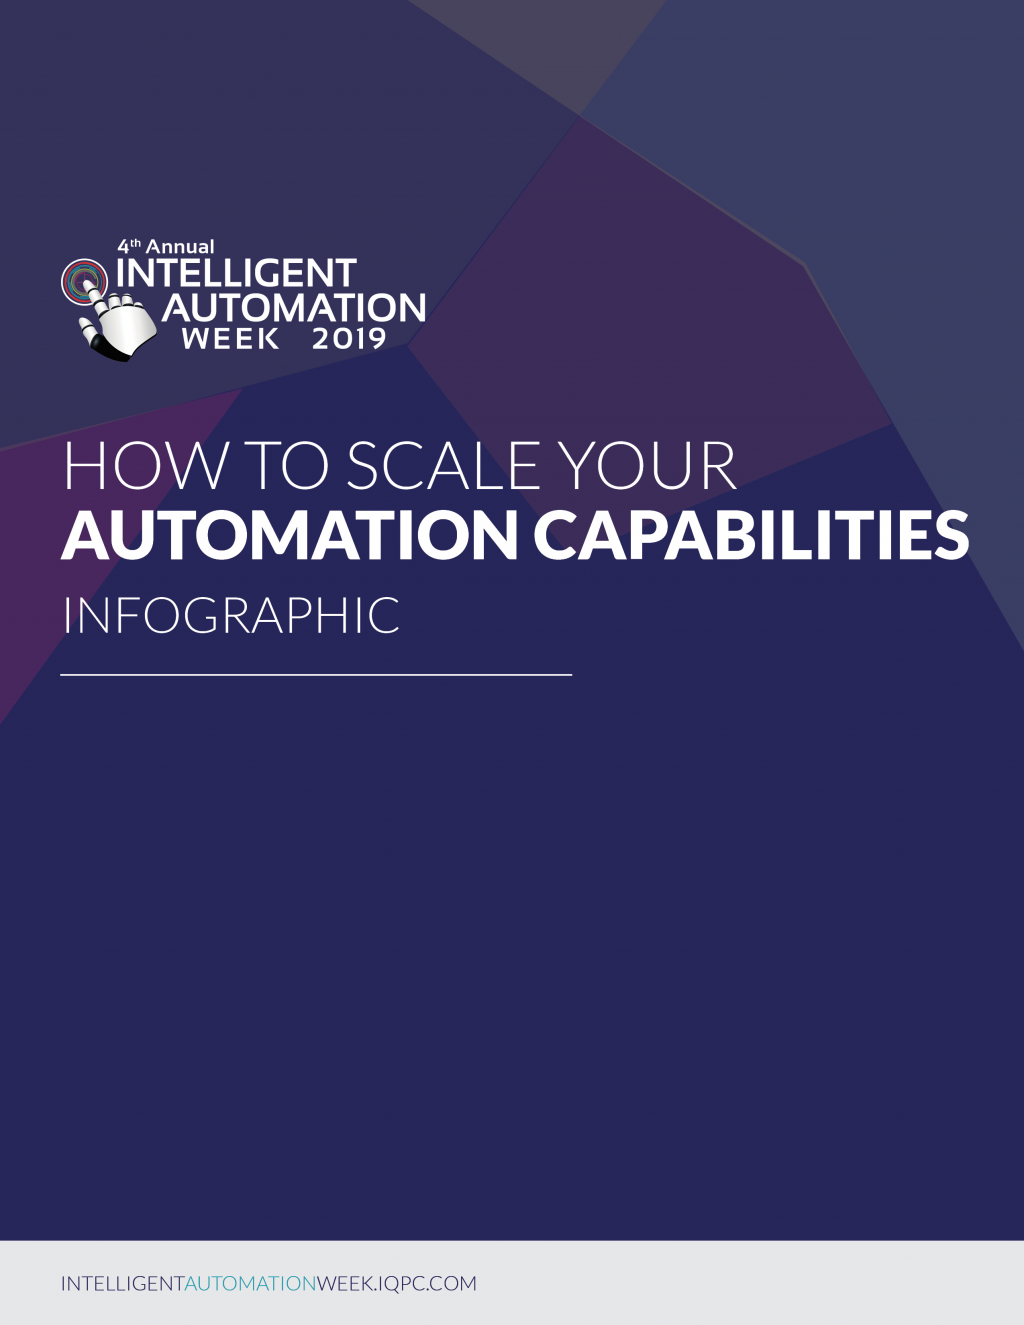 How to Scale your Automation Capabilities